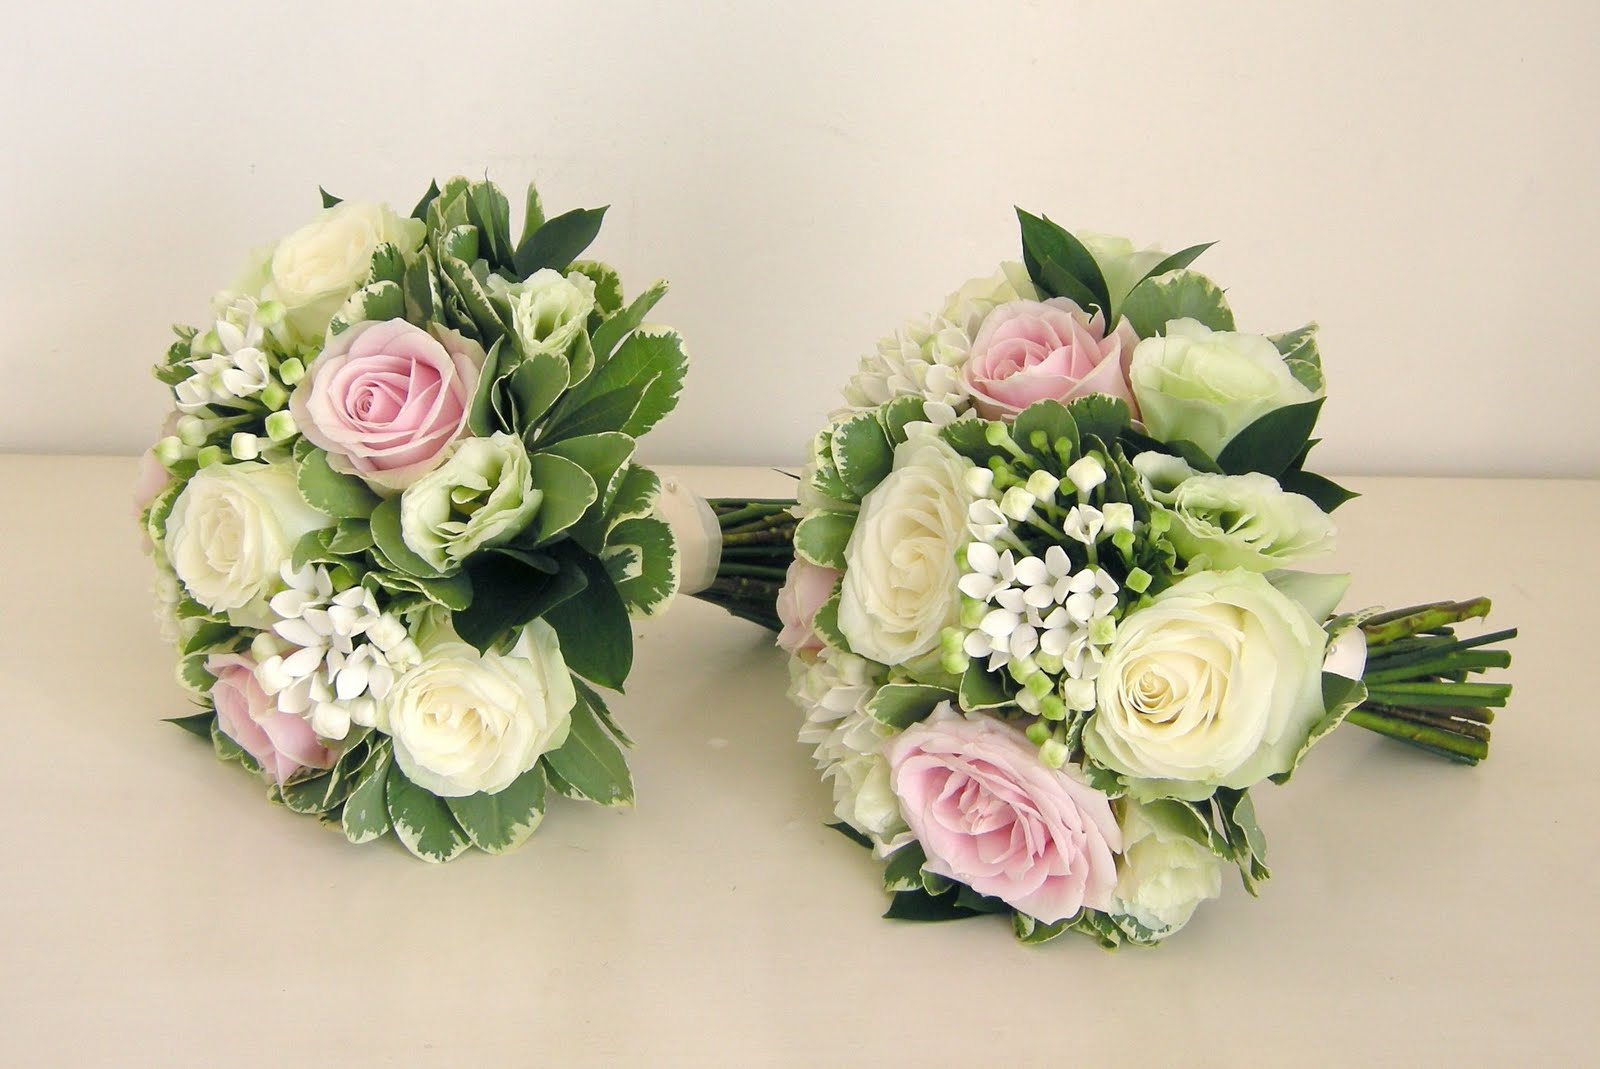 Bridal Bouquets Pink And White : Wedding flowers nikki s classic green white and